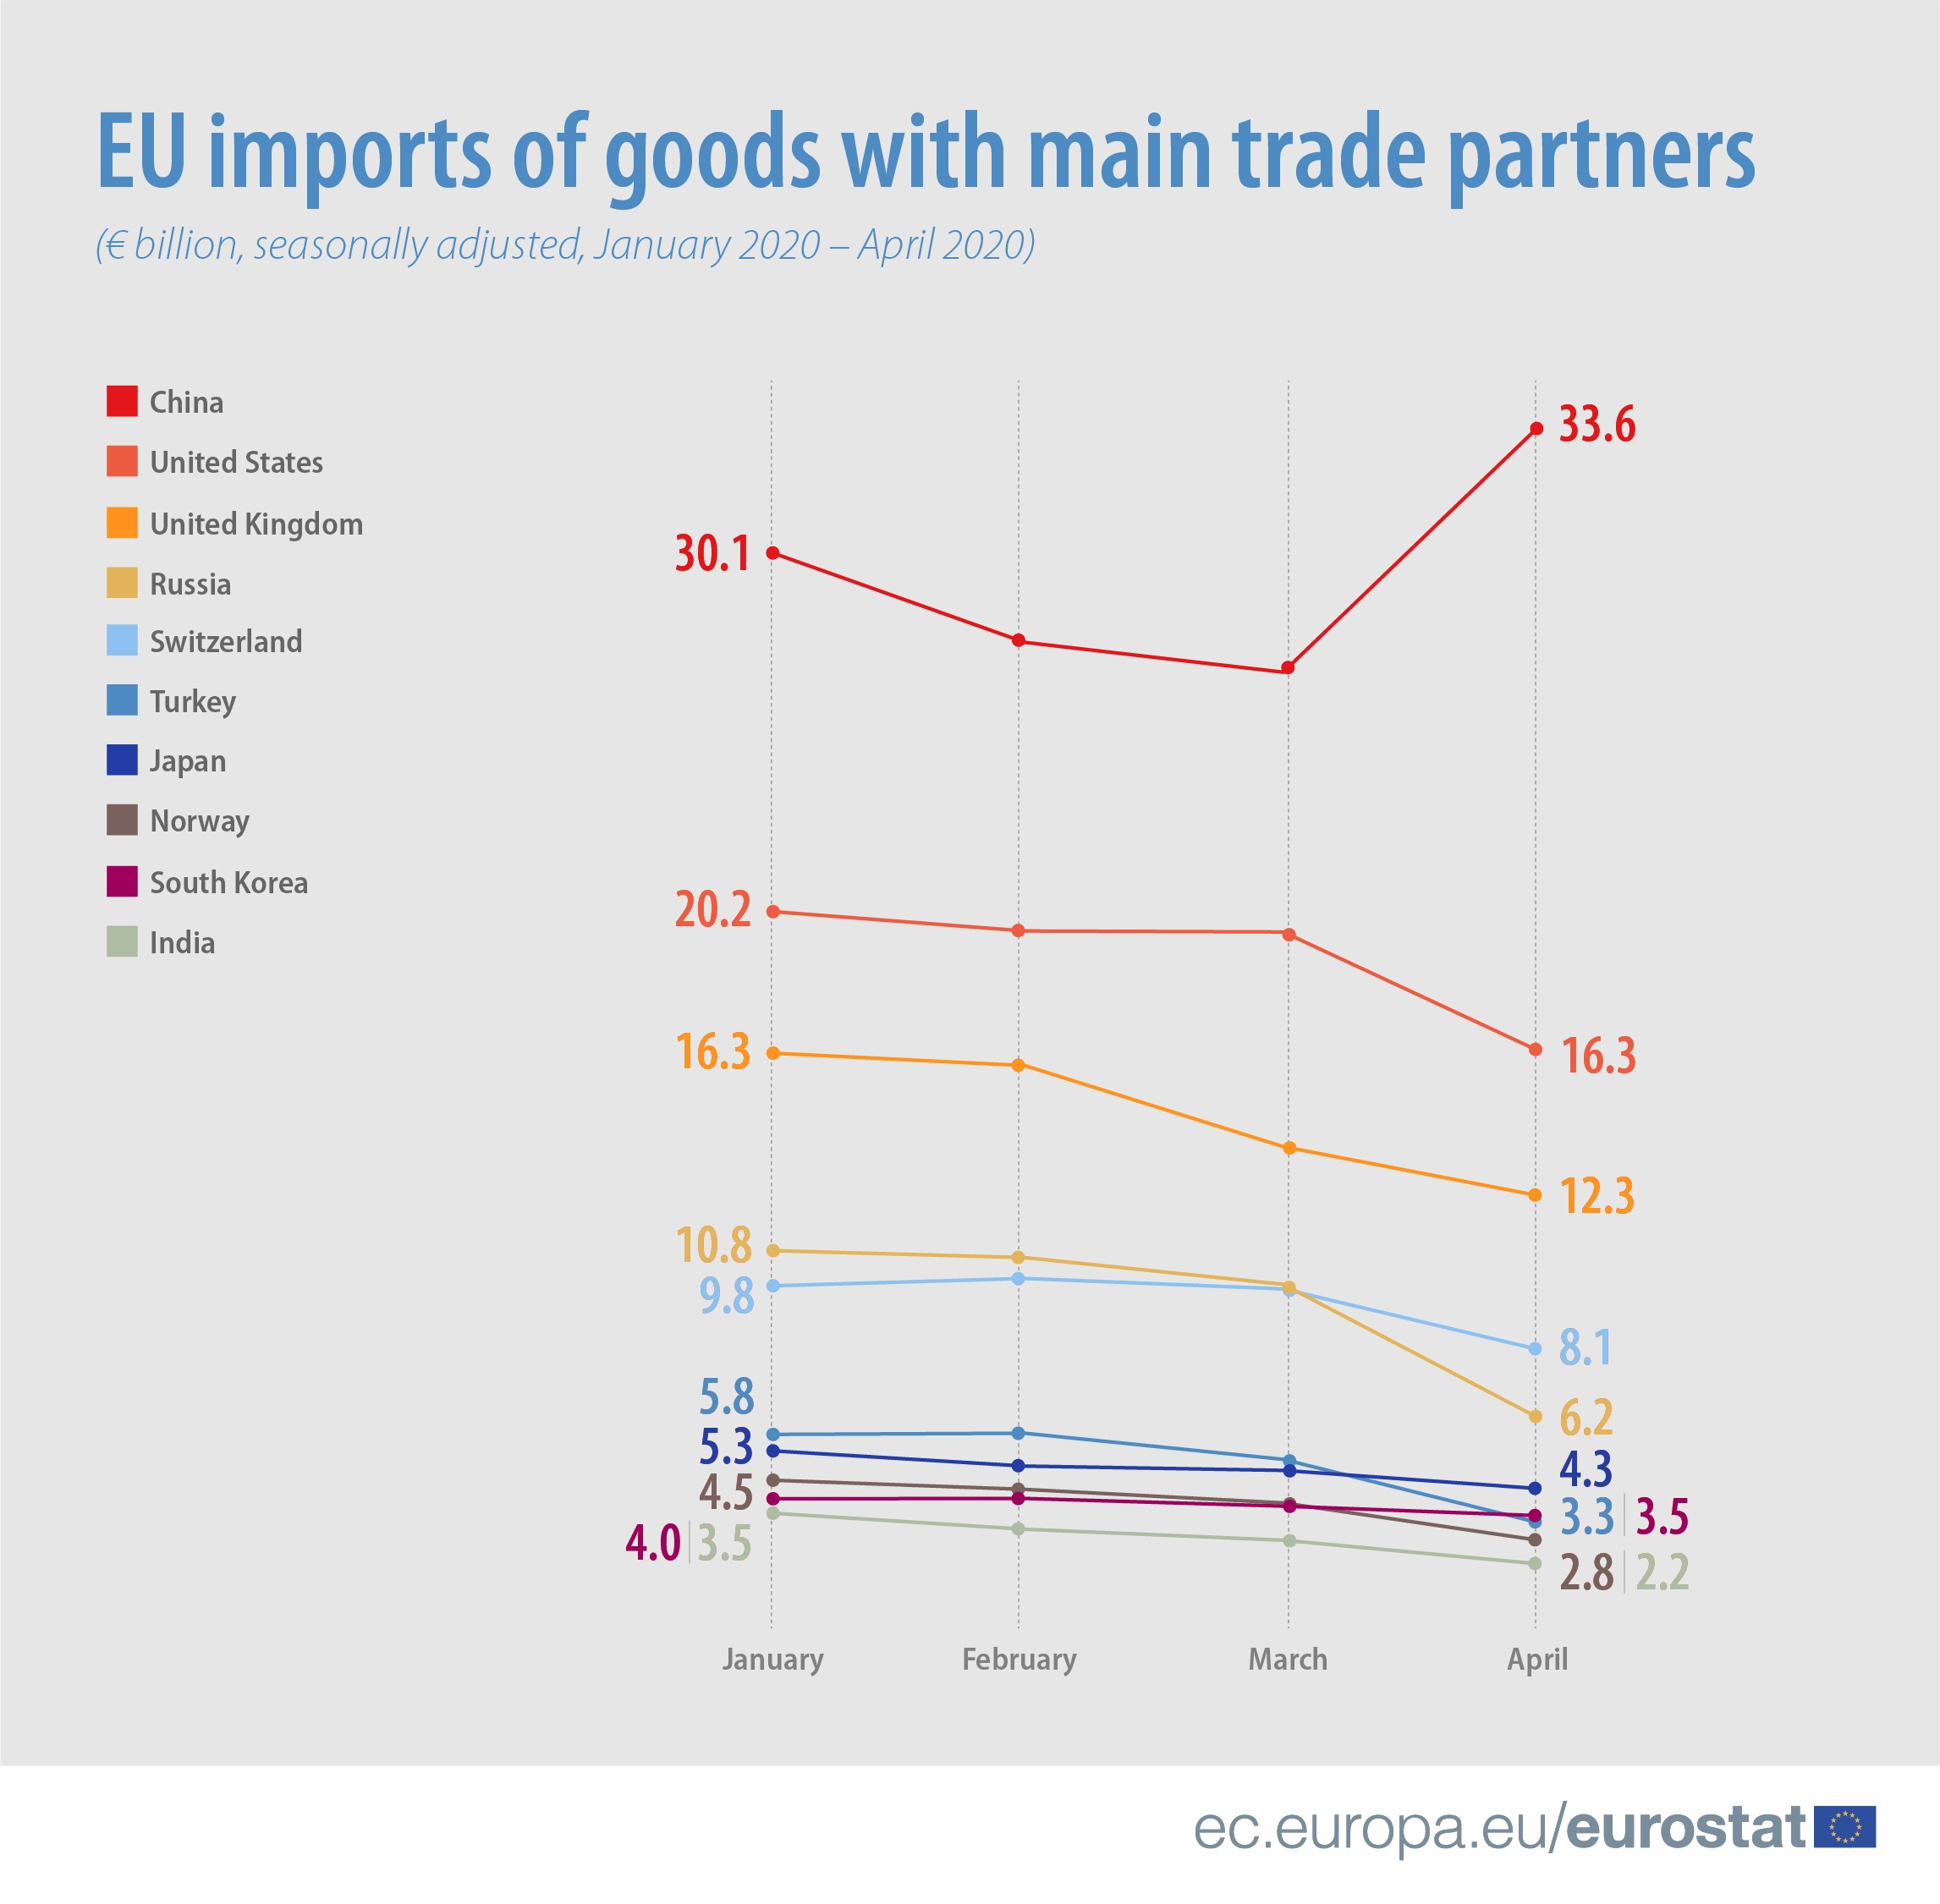 EU imports of goods with main trade partners, January - April 2020